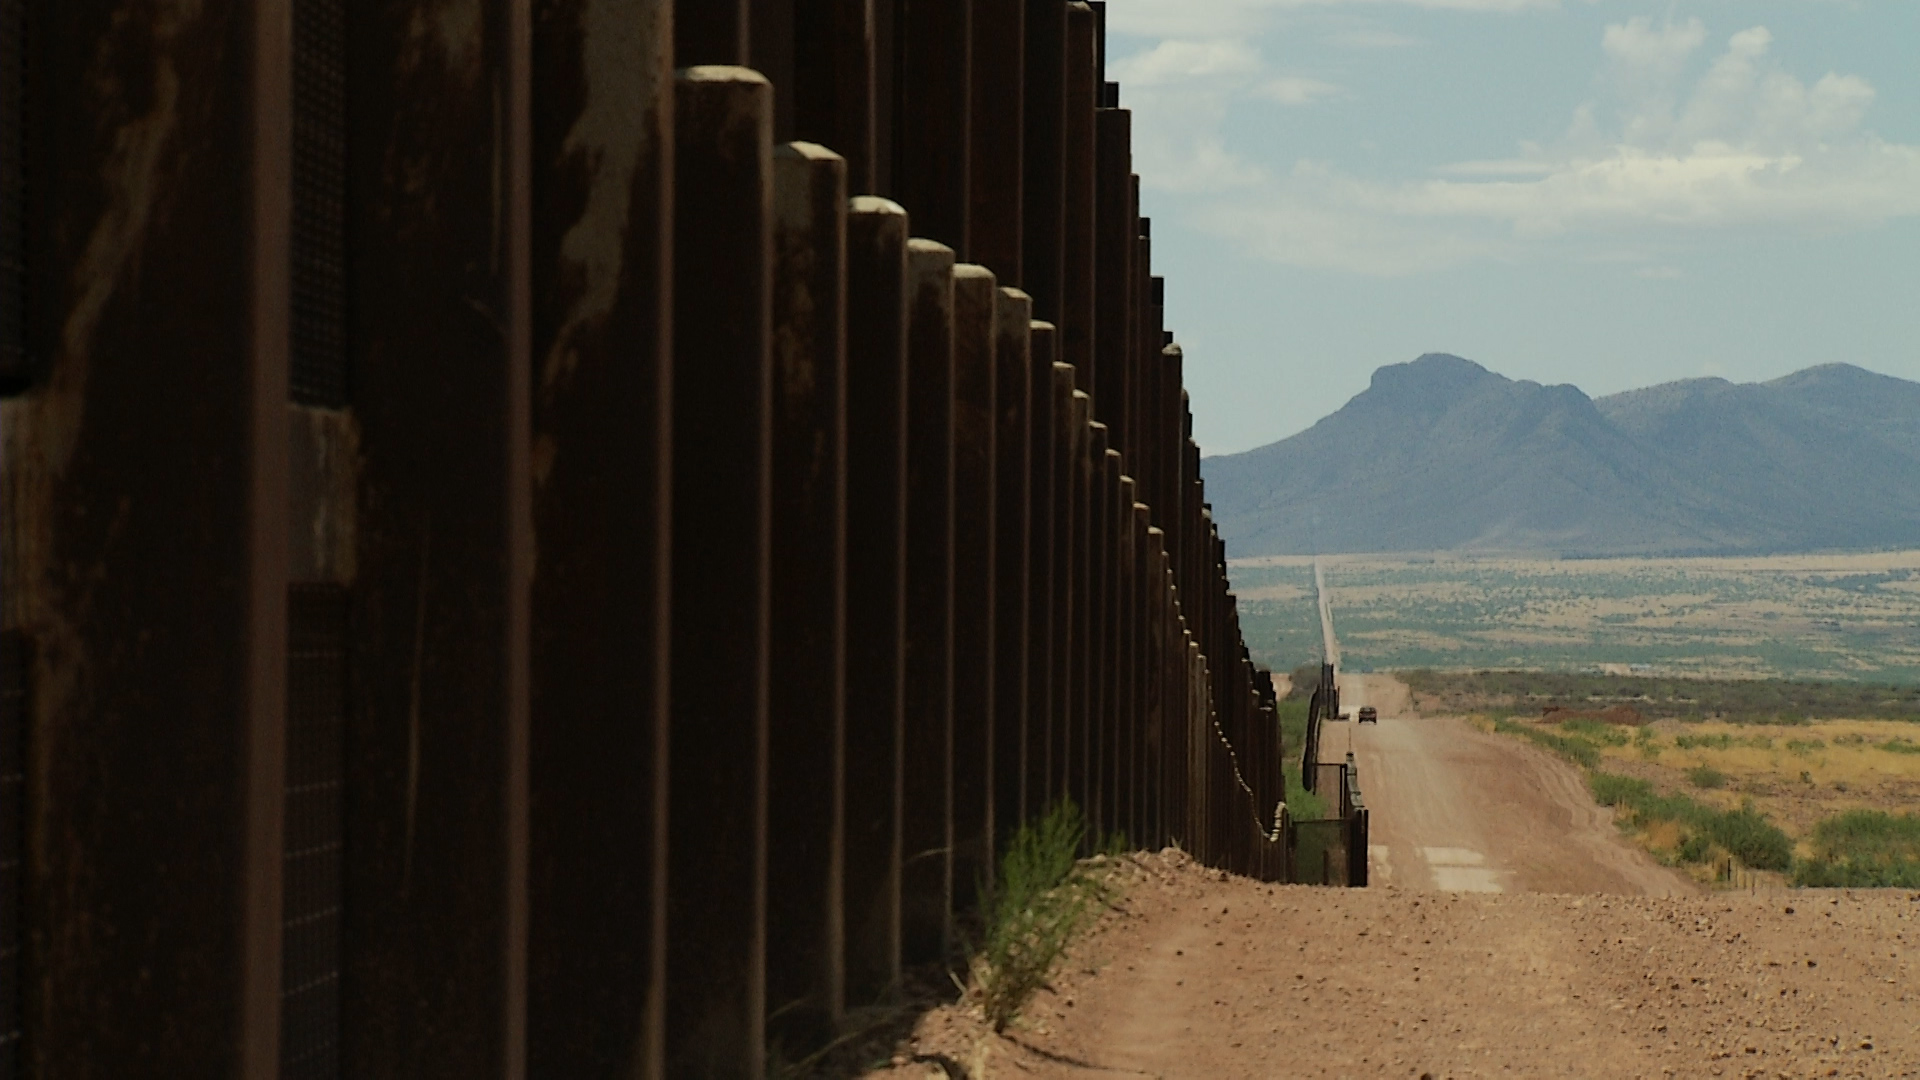 A file image of the U.S.-Mexico border wall in Arizona.